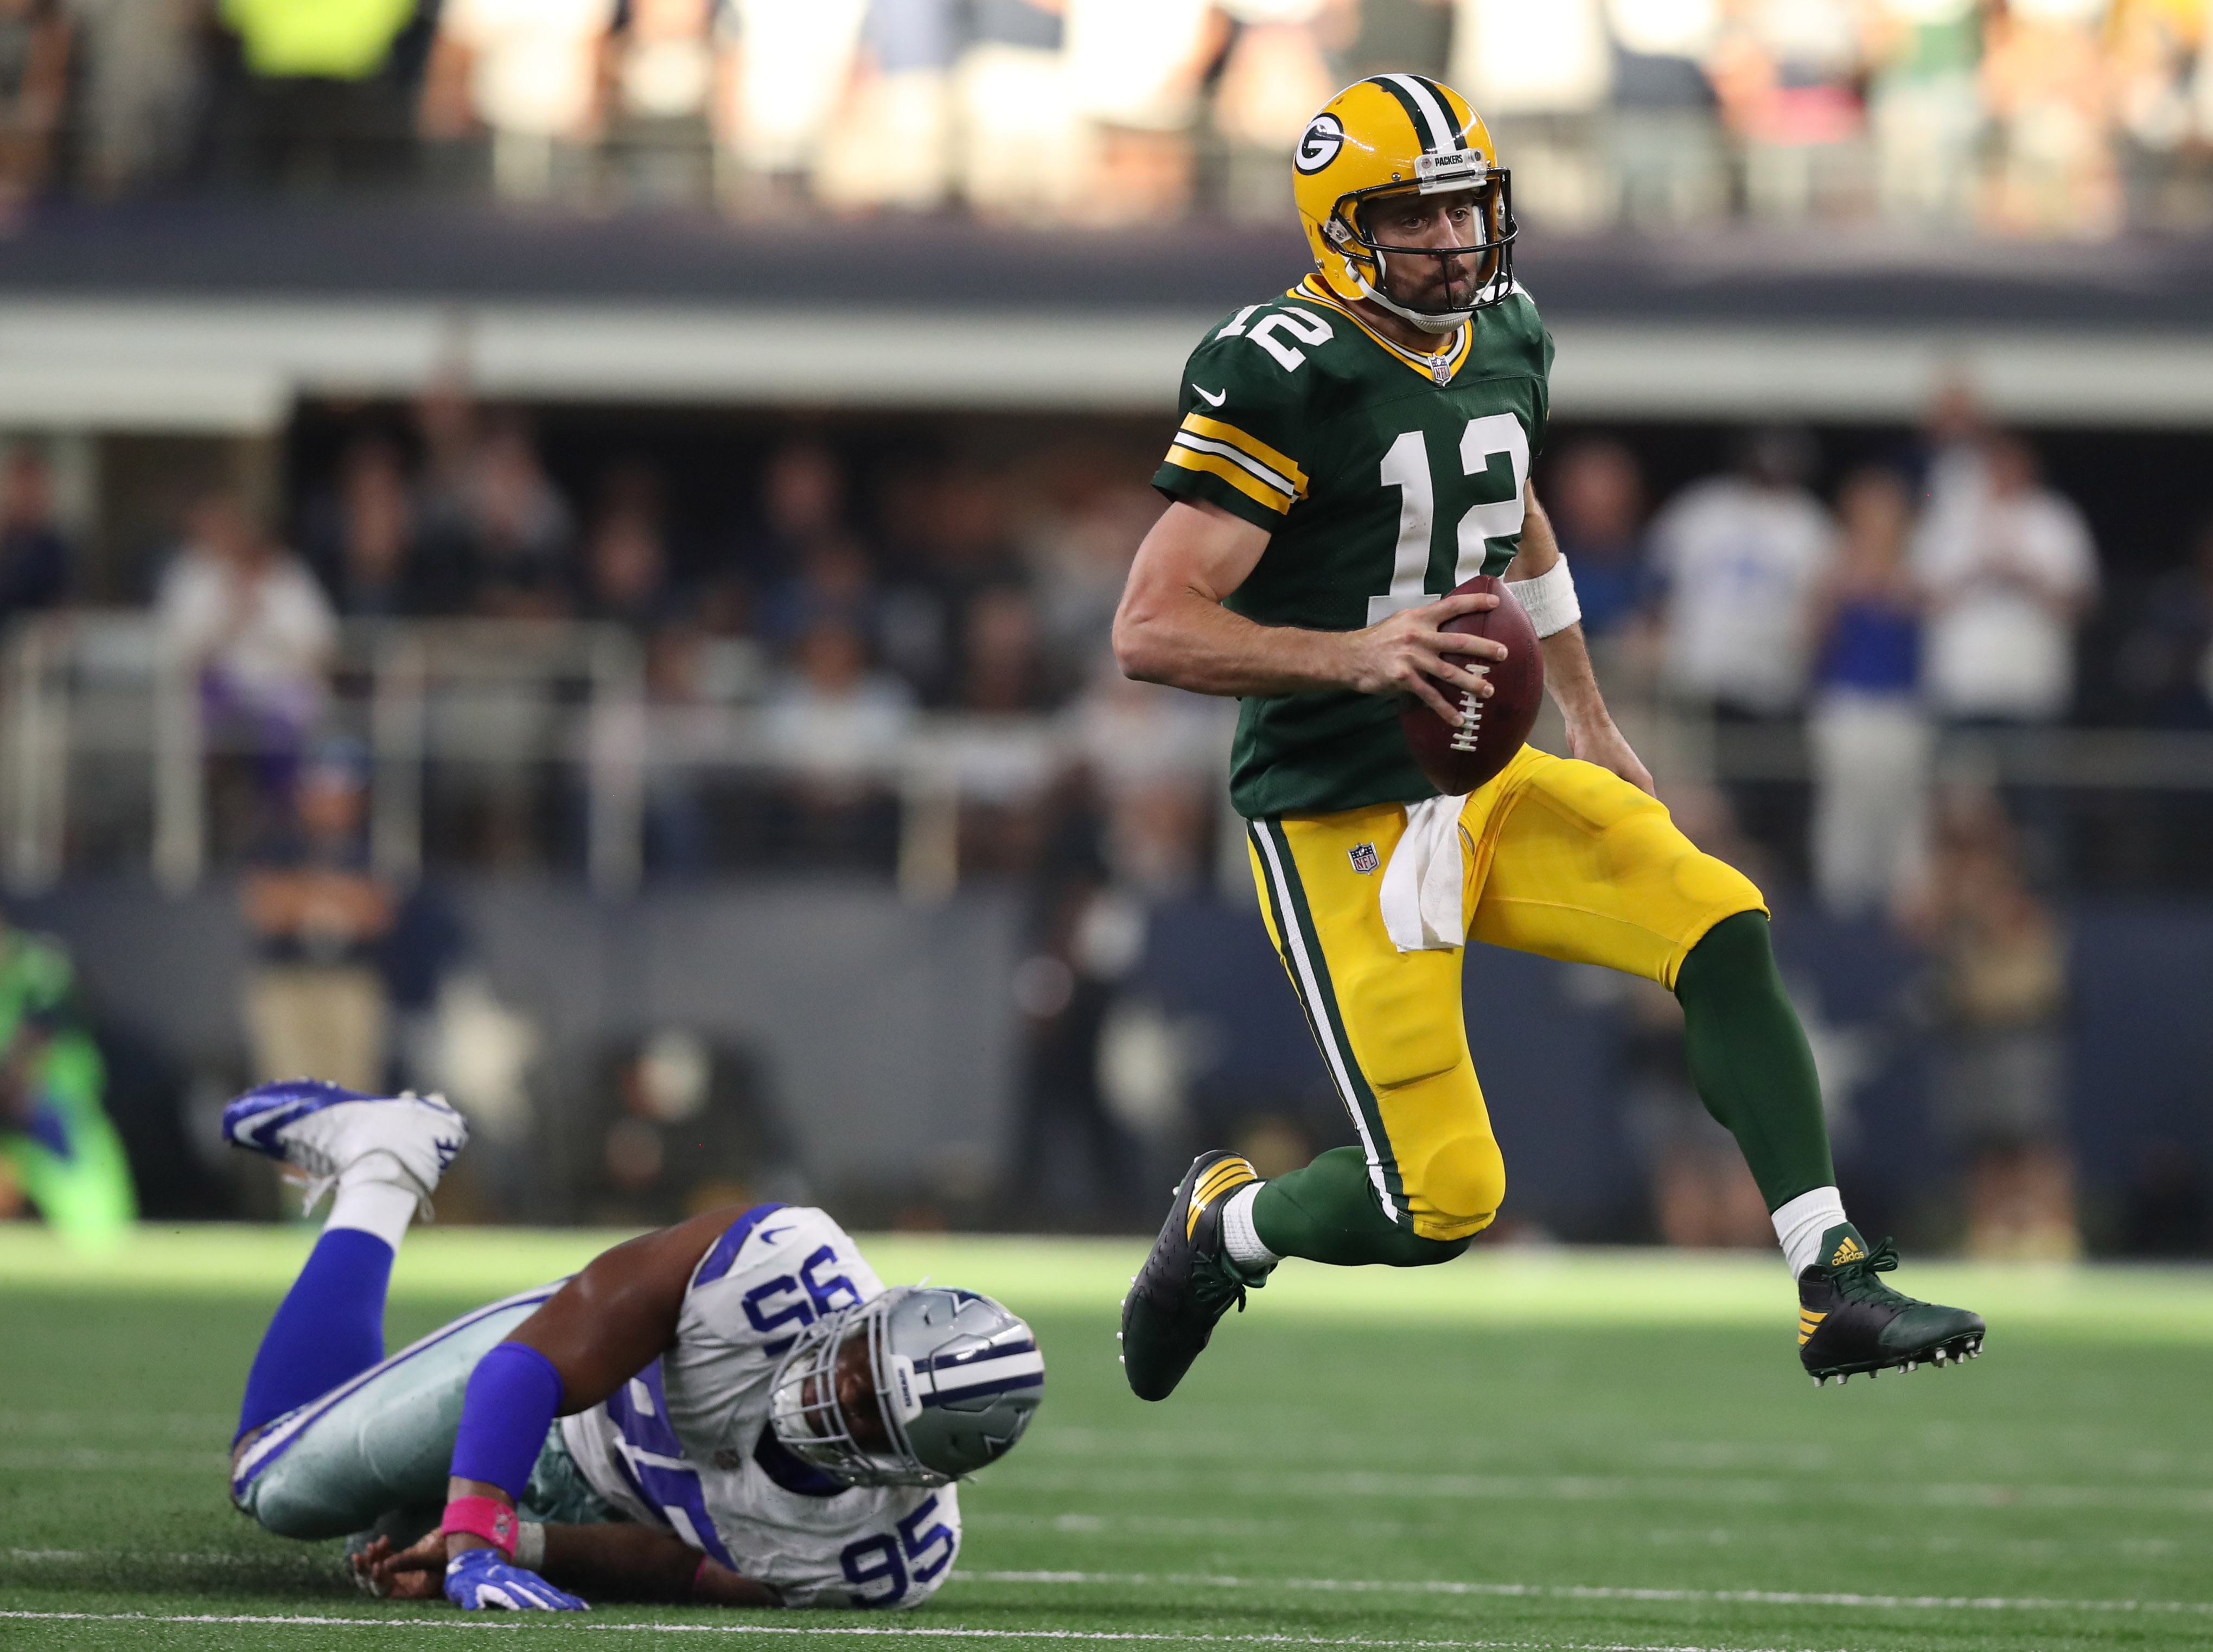 Packers' QB Aaron Rodgers Has Always Shined in Dallas